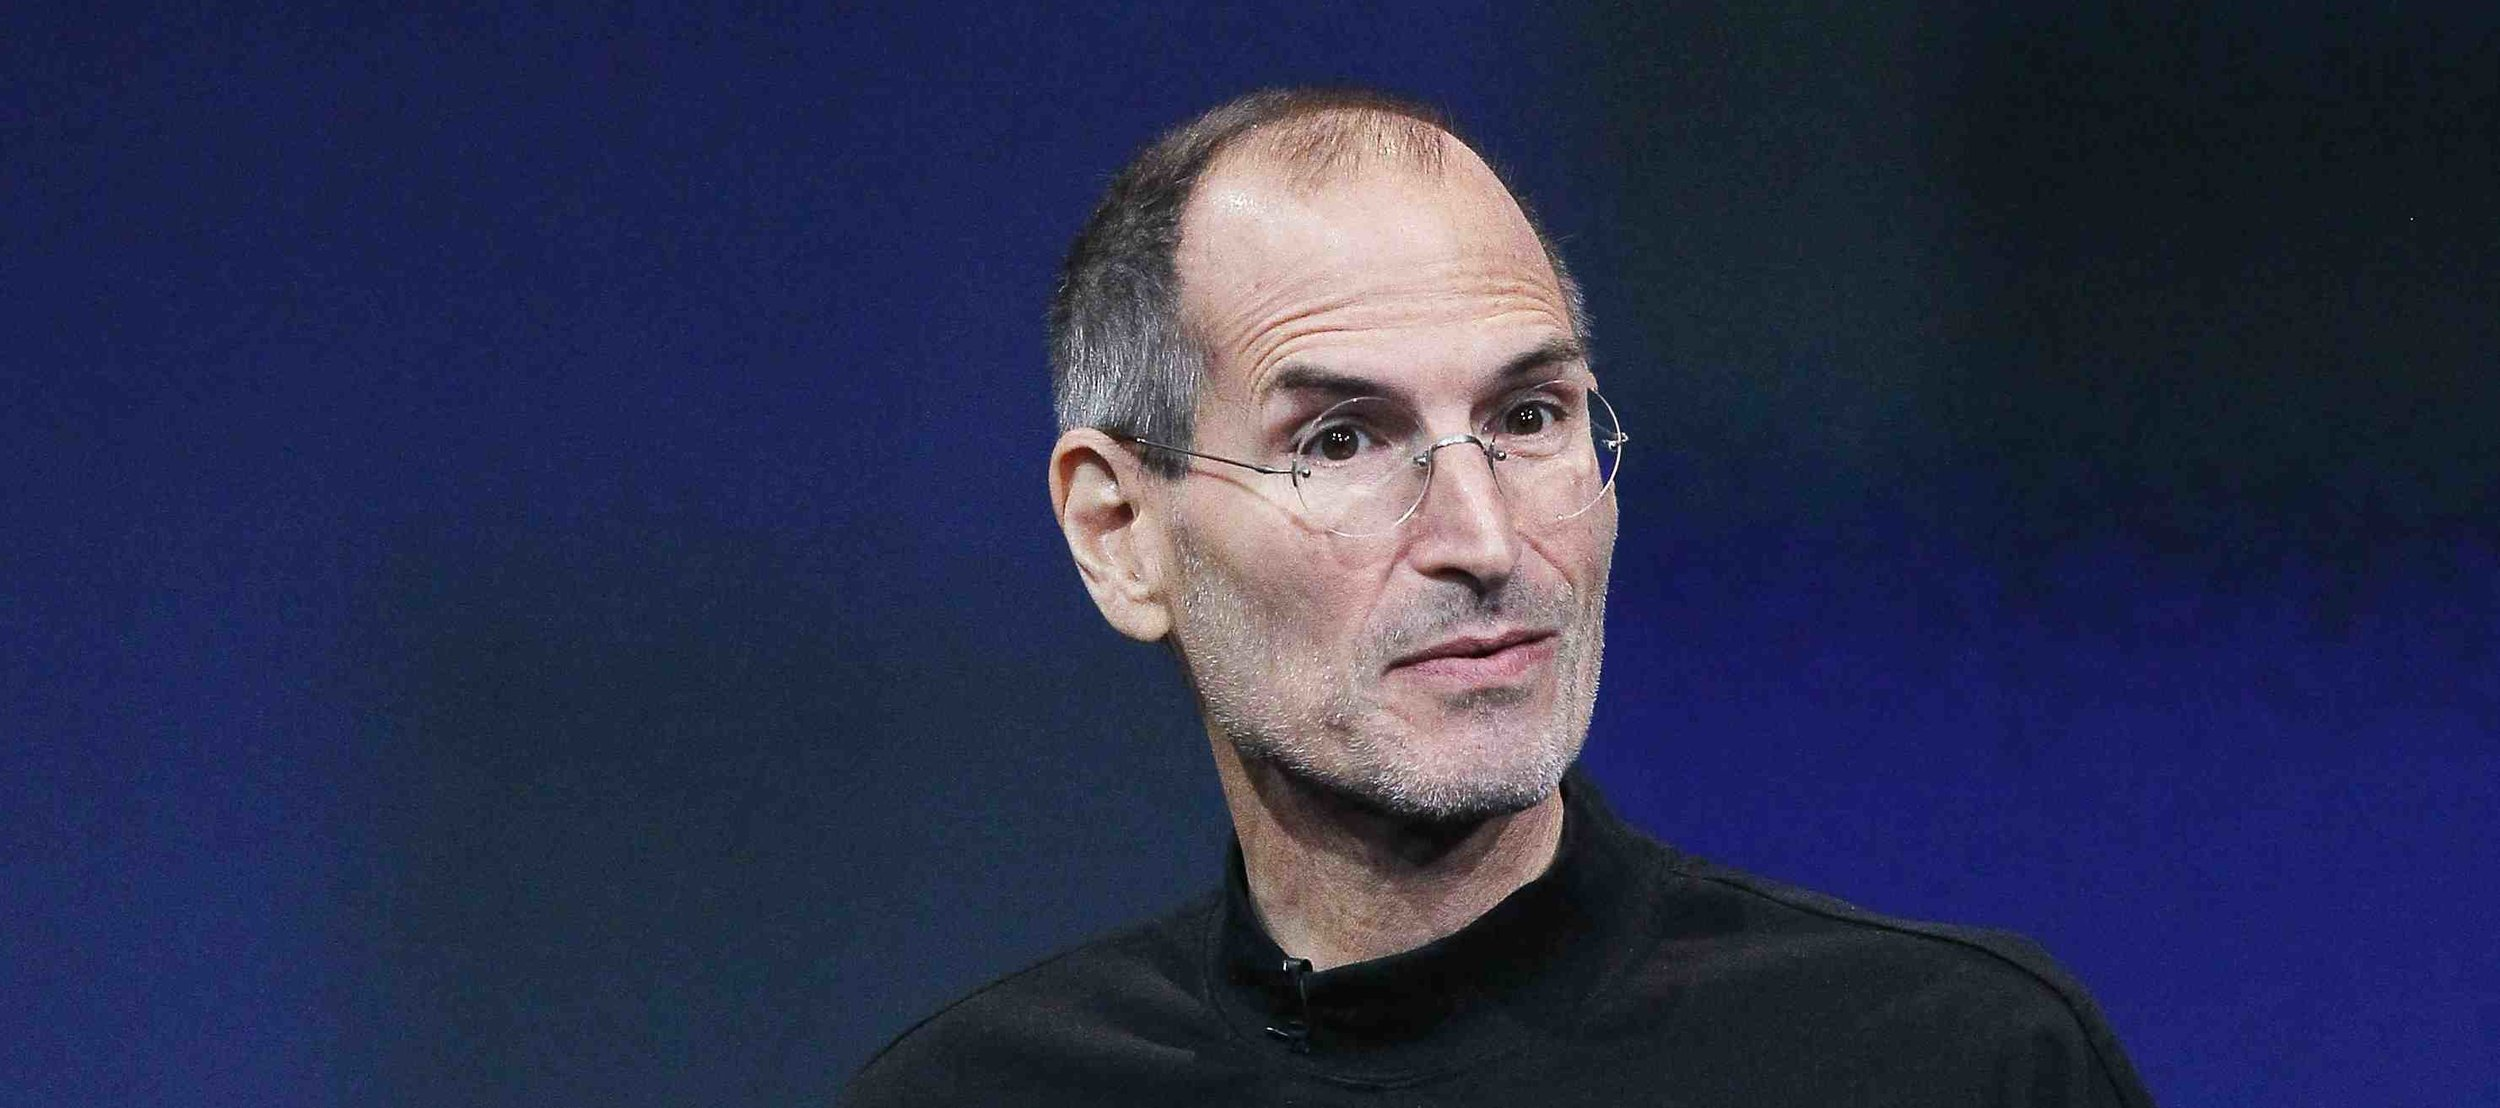 Steve-Jobs-Tony-Wrighton-blog1.jpg